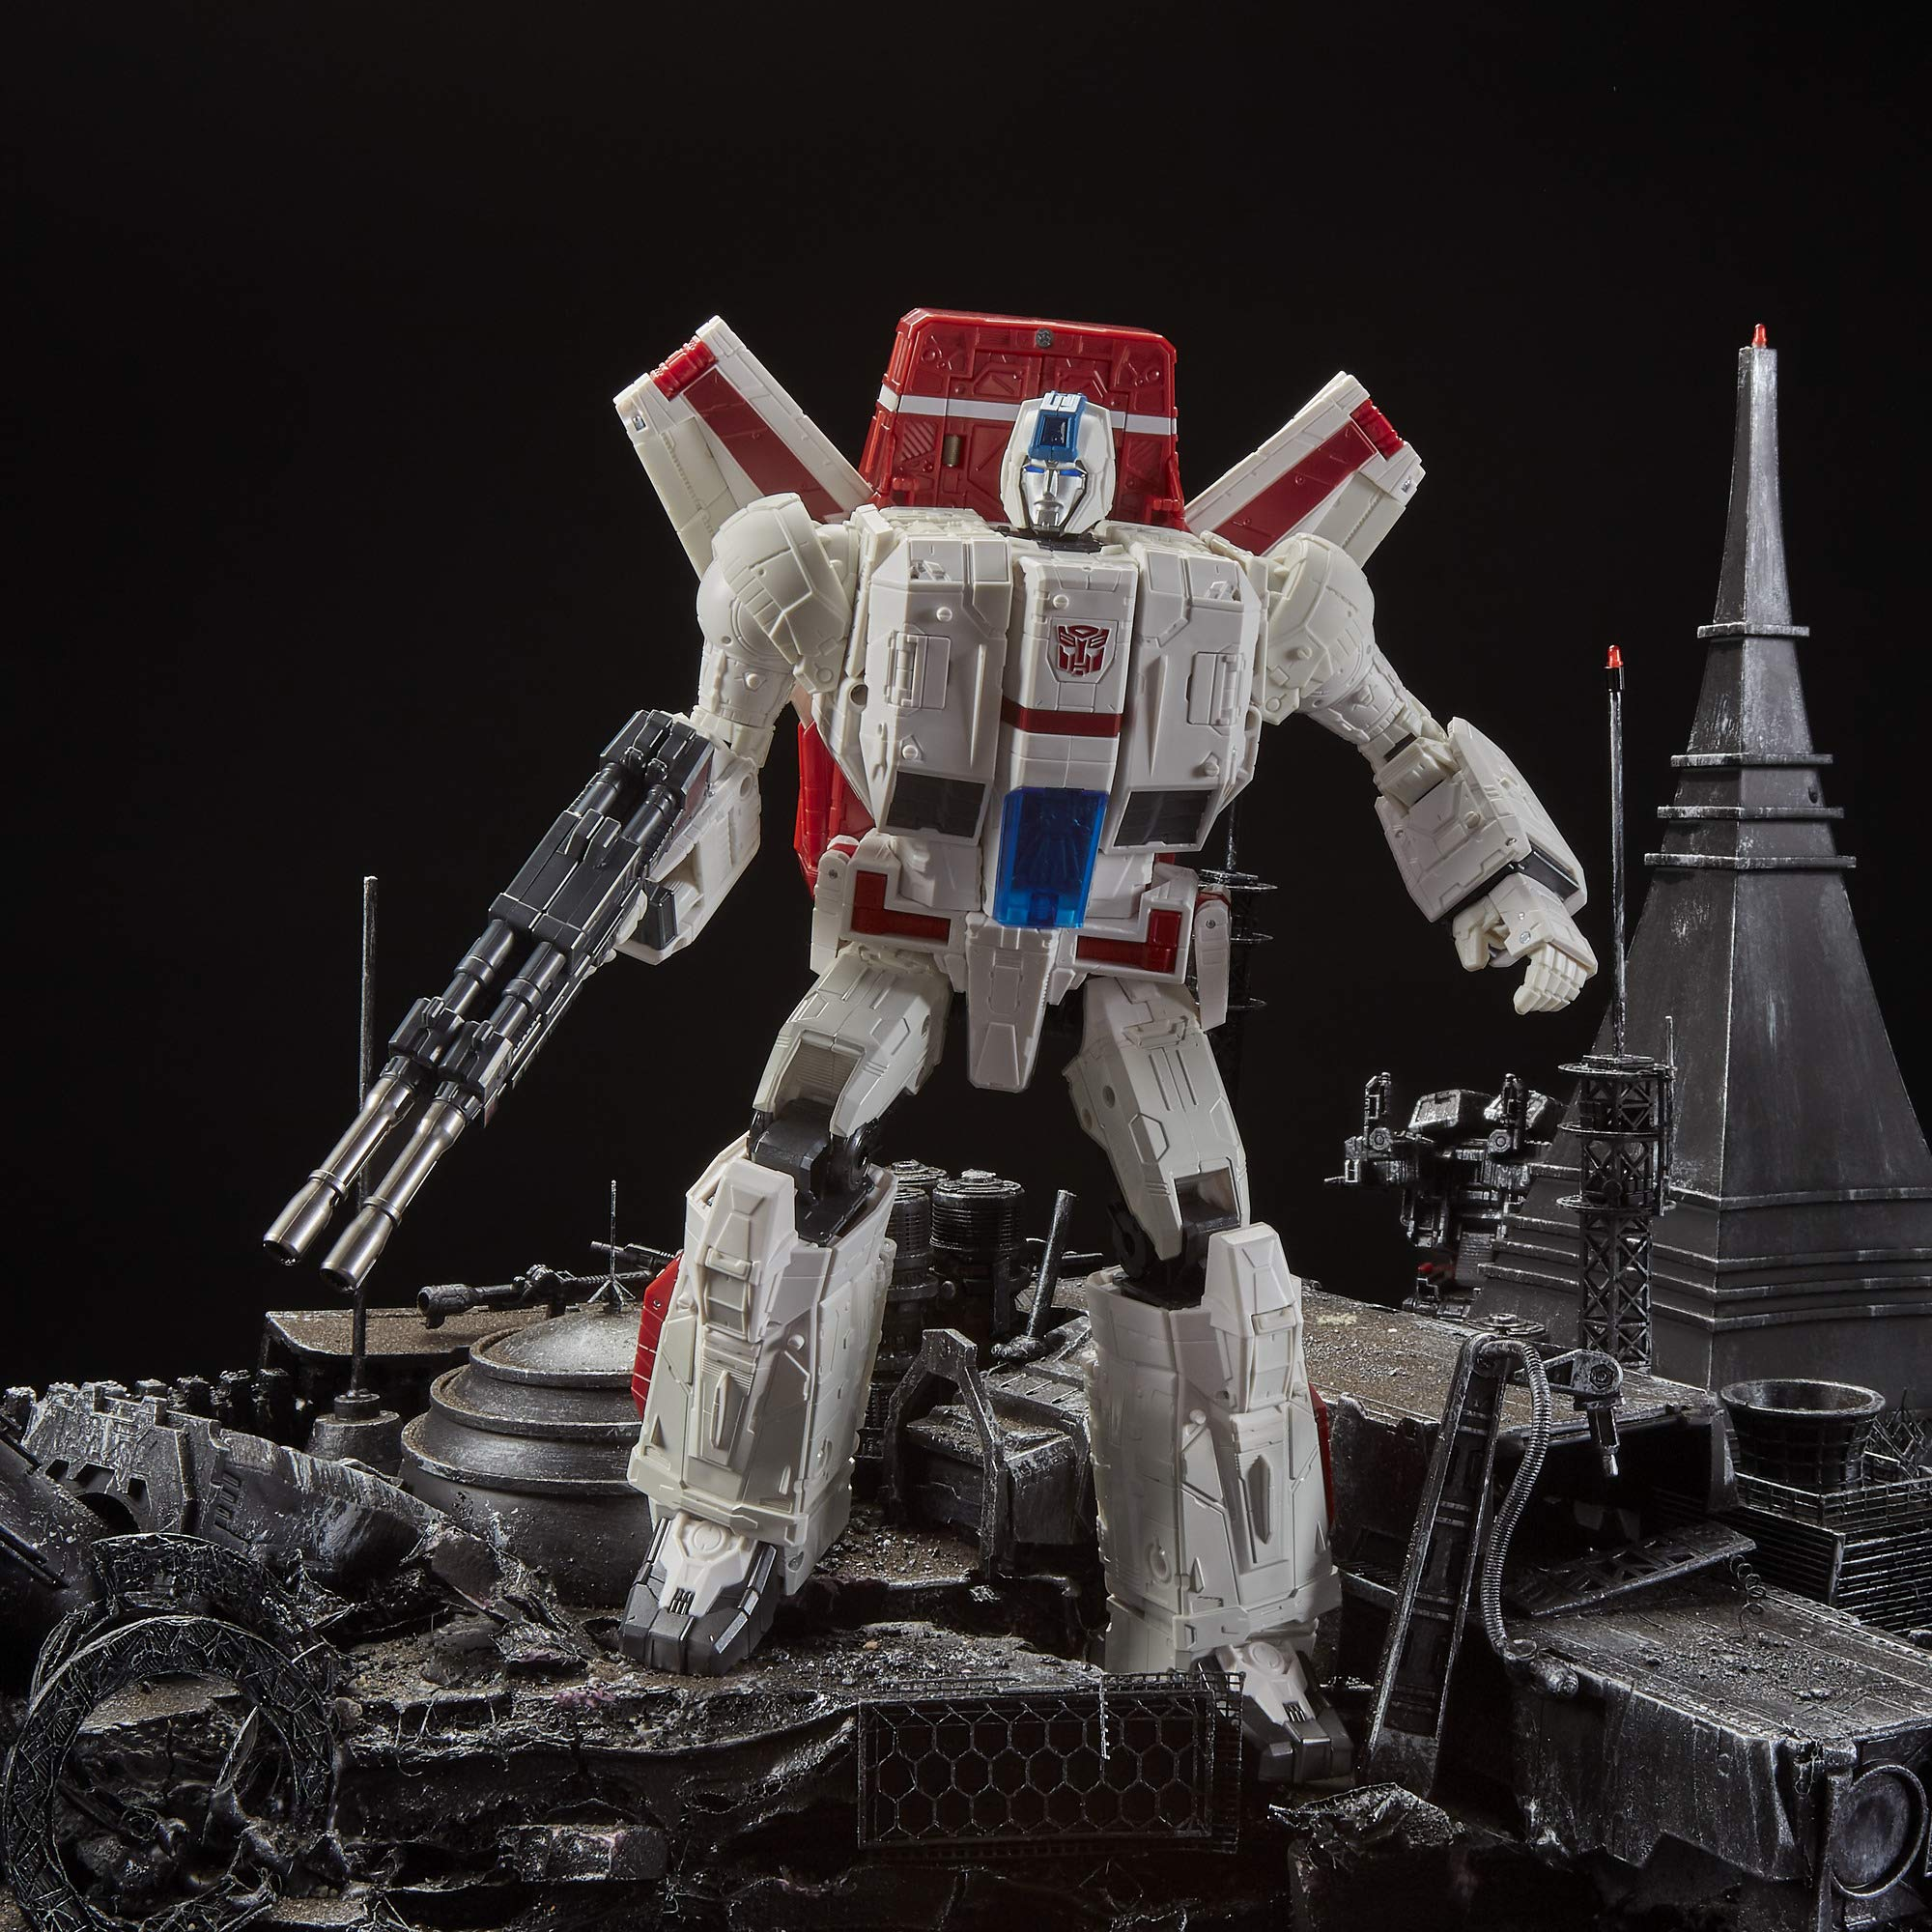 Transformers Toys Generations War for Cybertron Commander Wfc-S28 Jetfire Action Figure - Siege Chapter - Adults & Kids Ages 8 & Up, 11'' by Transformers (Image #10)